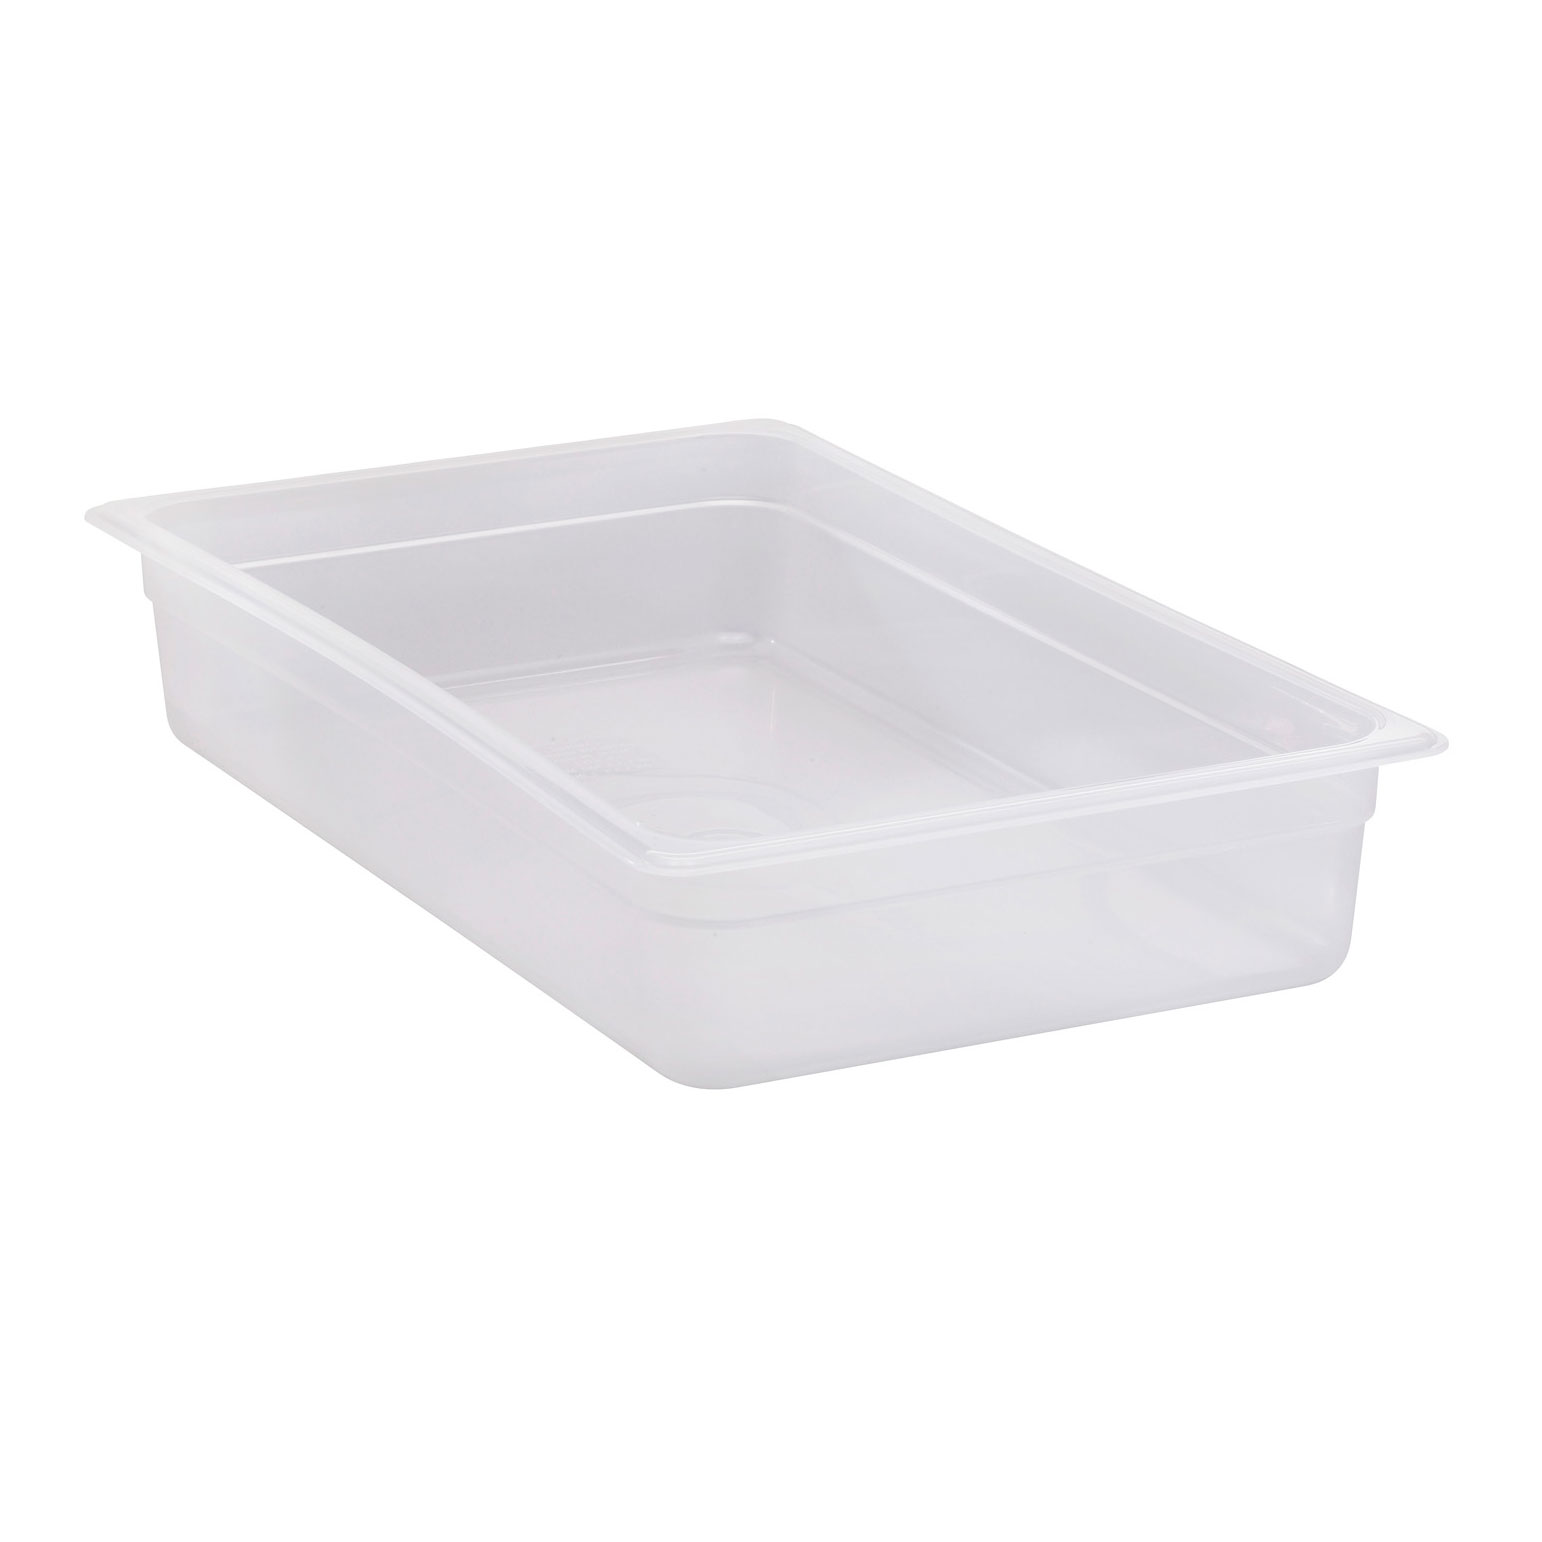 Cambro 14PP190 food pans